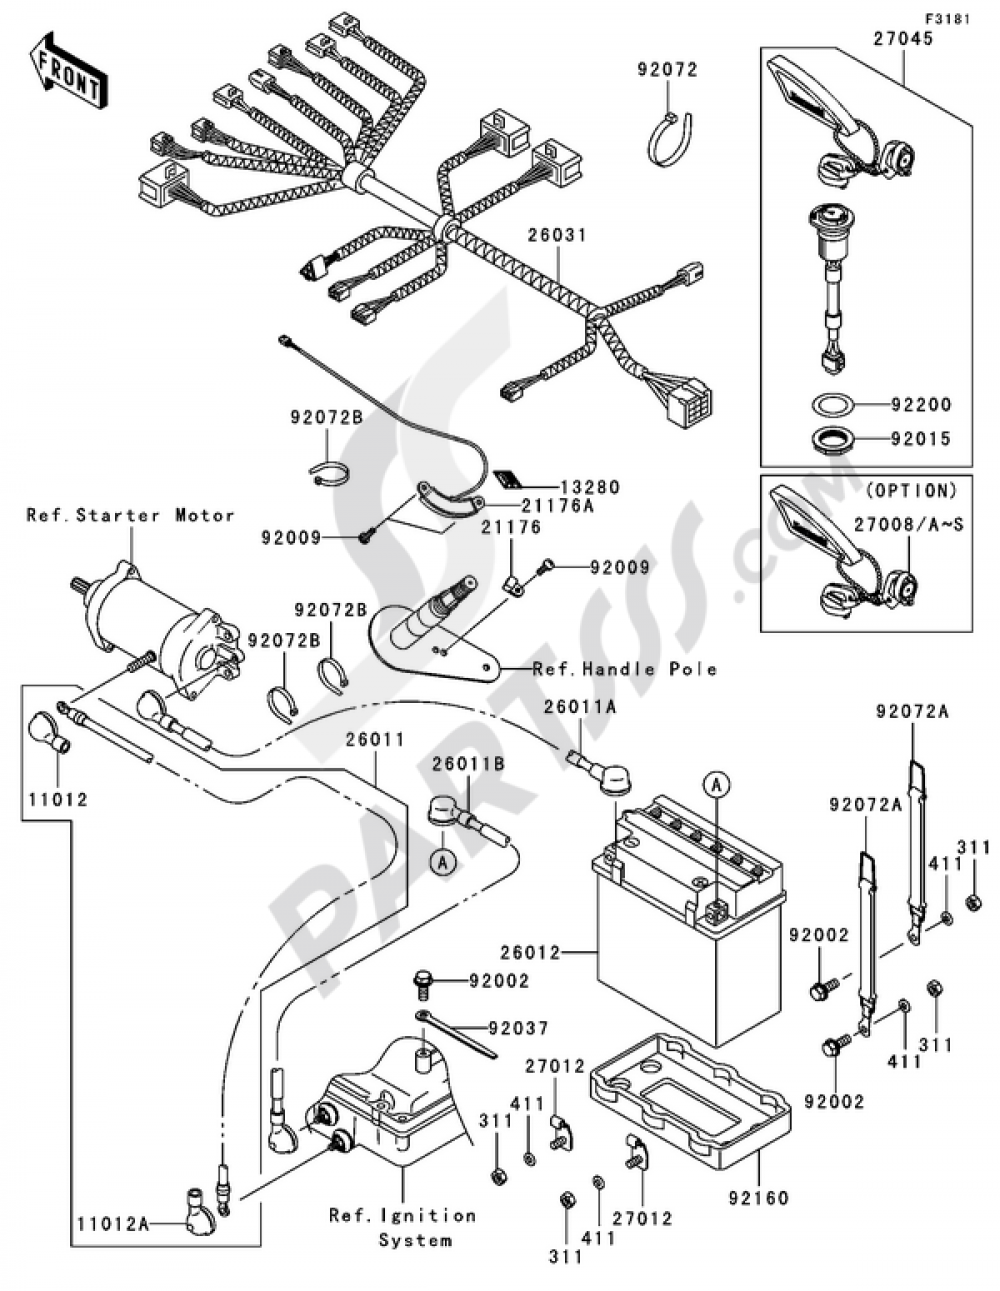 Kawasaki 900 Stx Wiring Diagram - Wiring Schematics on